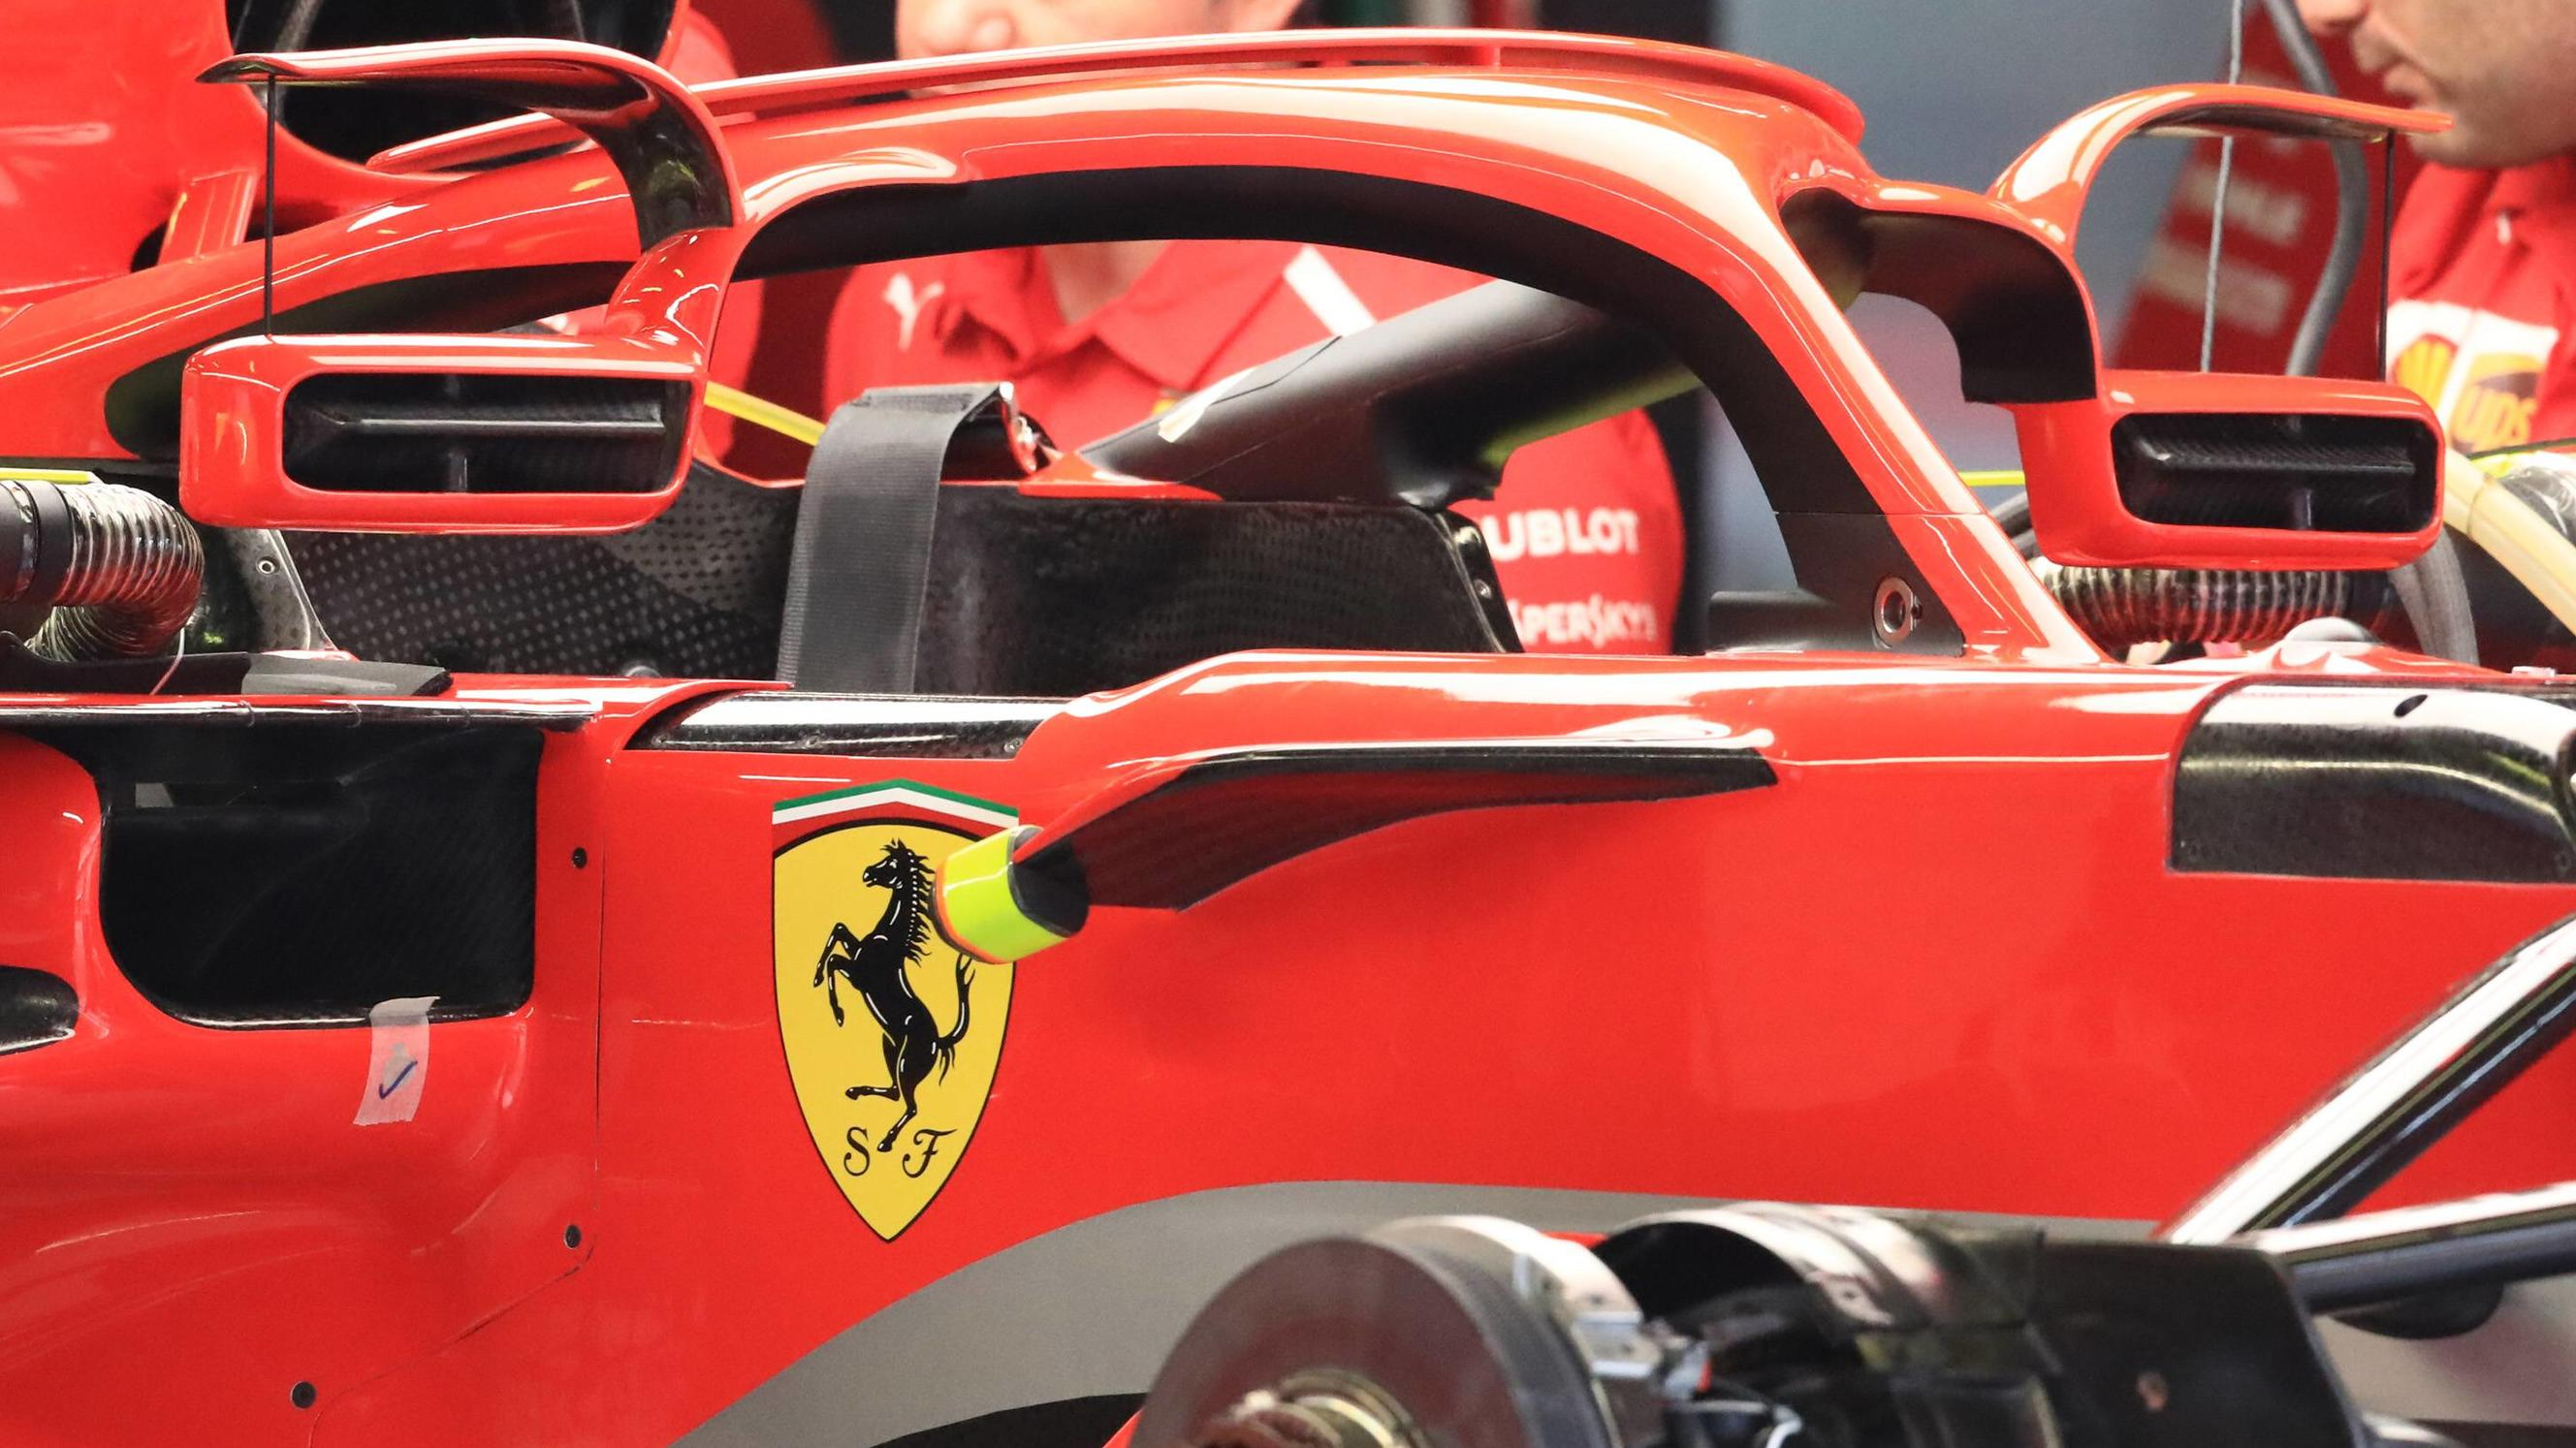 10th May, Circuit de Barcelona, Barcelona, Spain&#x3B; Spanish Formula One Grand Prix, driver arrivals and press conference PK Pressekonferenz Scuderia Ferrari cars show new mirrors on the halo PUBLICATIONxINxGERxSUIxAUTxHUNxSWExNORxDENxFINxONLY ActionPlu